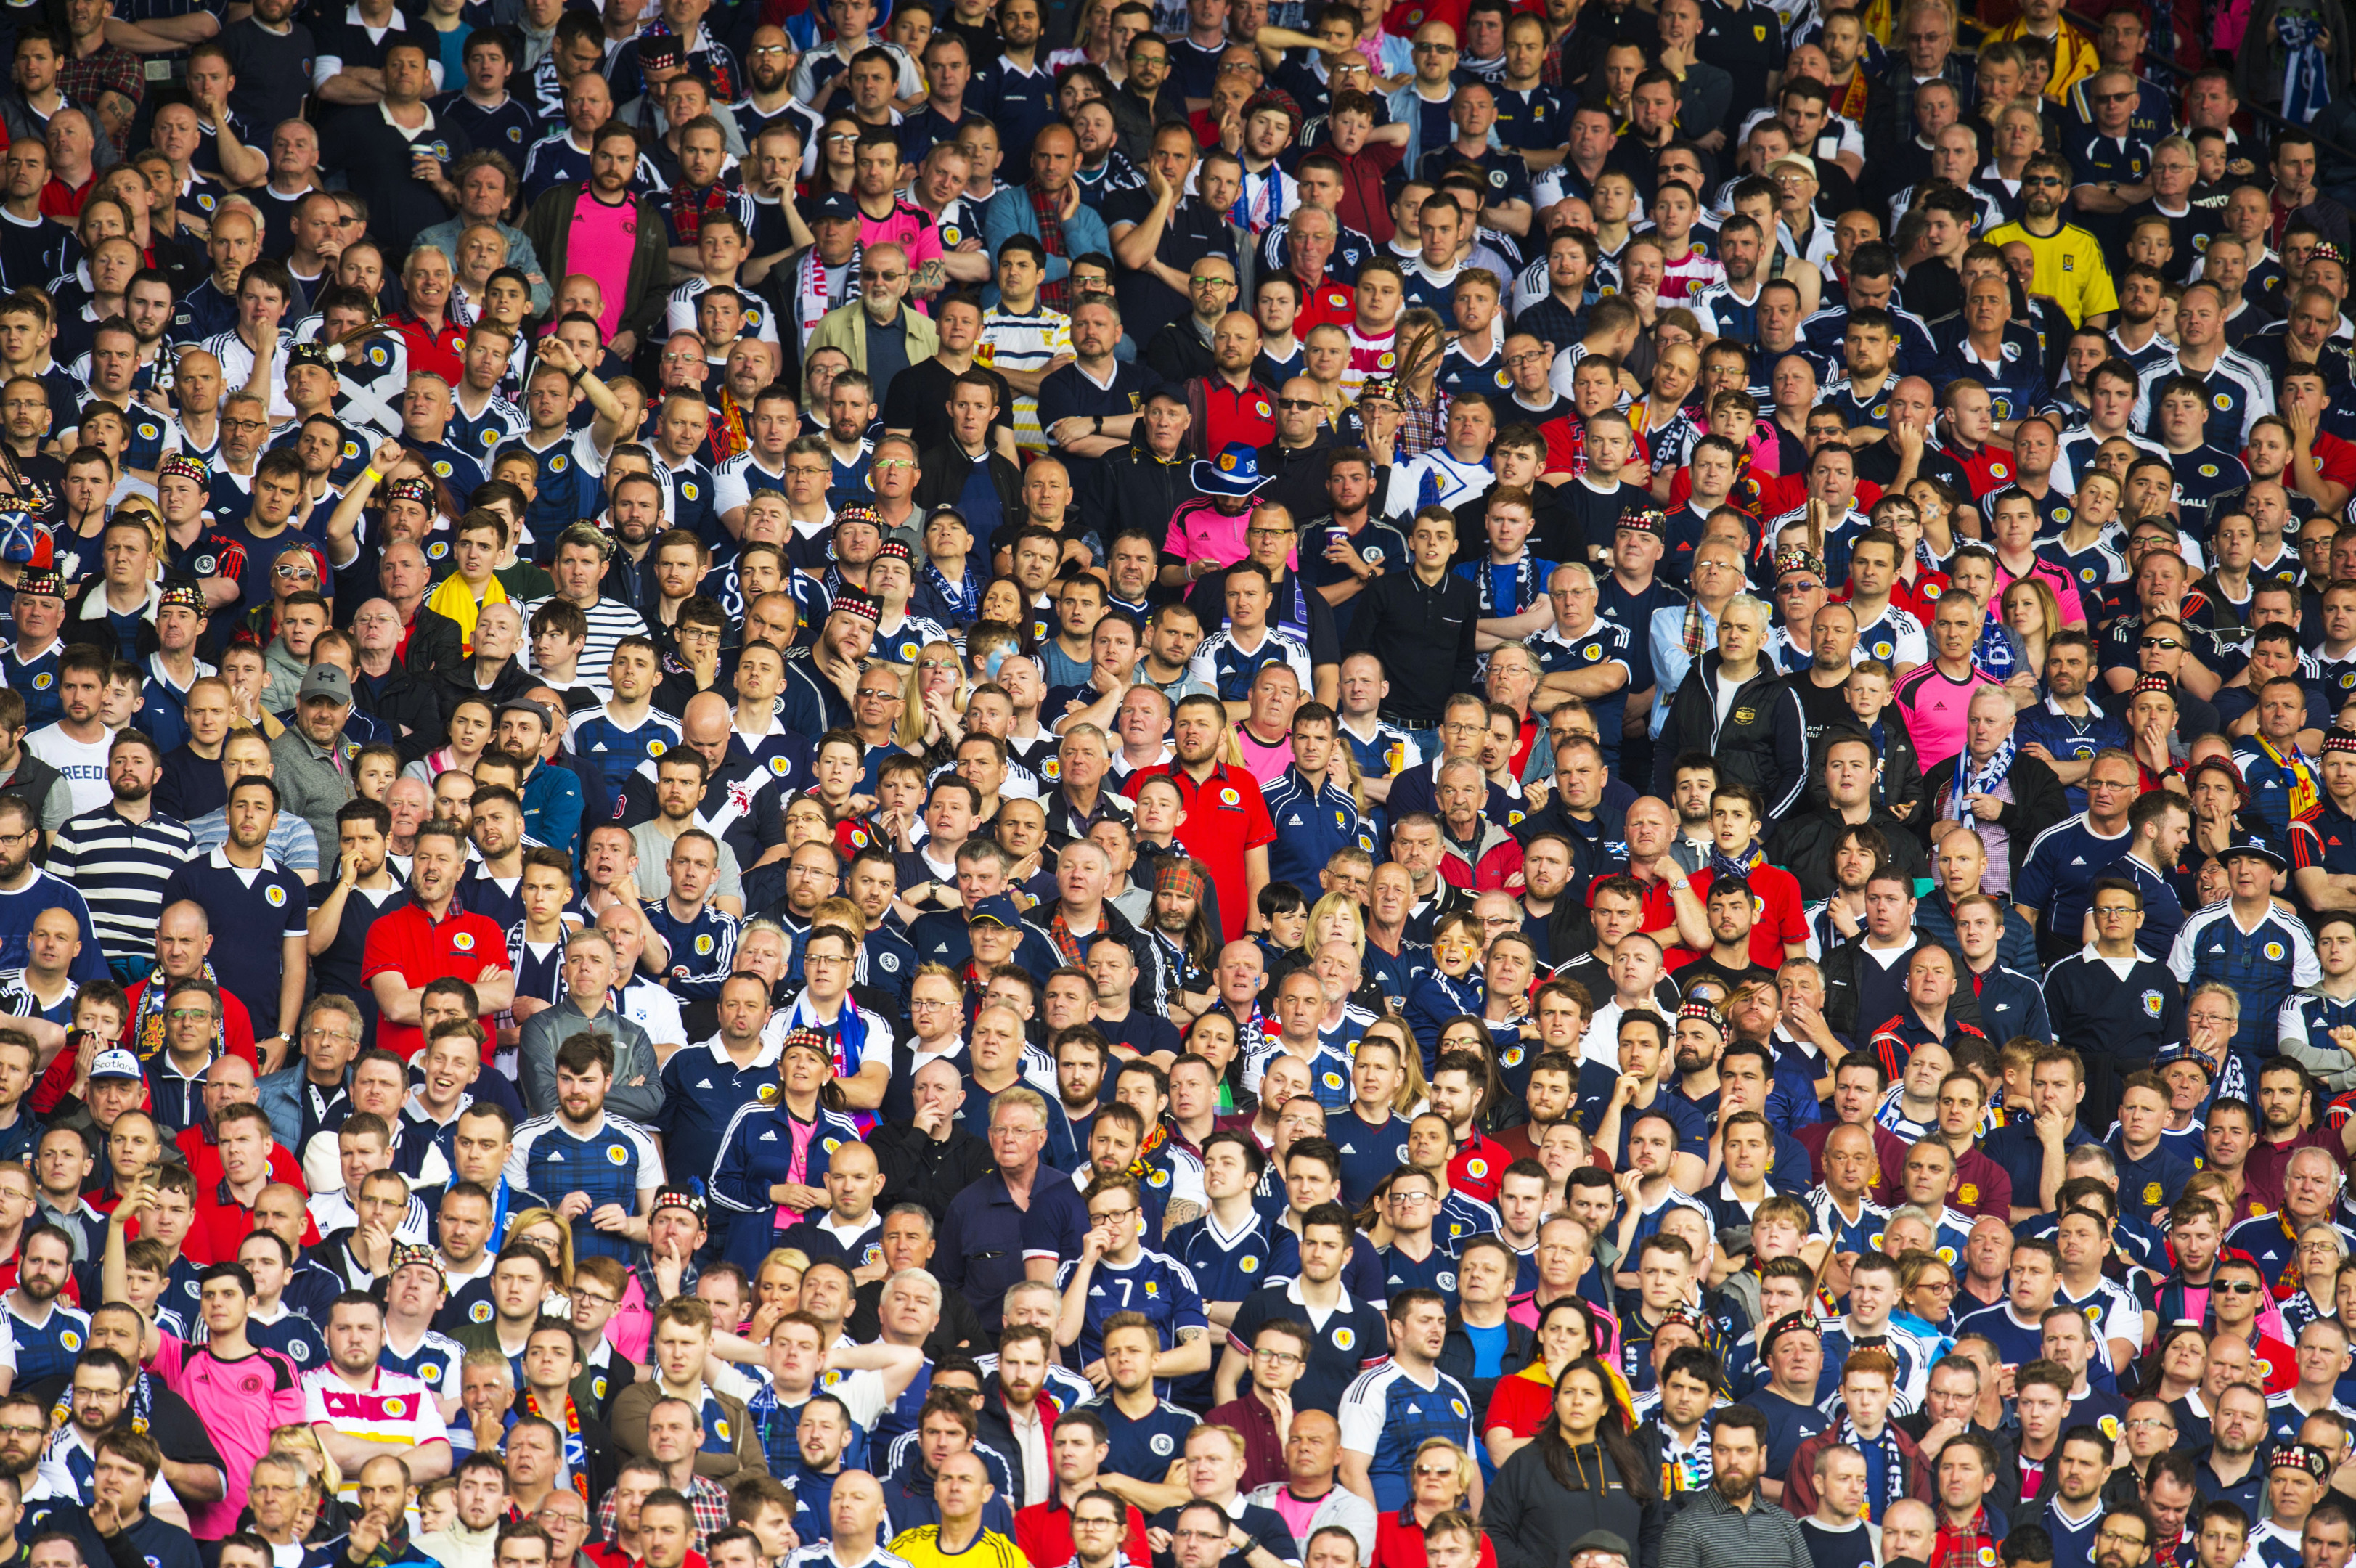 The fans say they were scammed out of the chance of watching the Hampden clash.